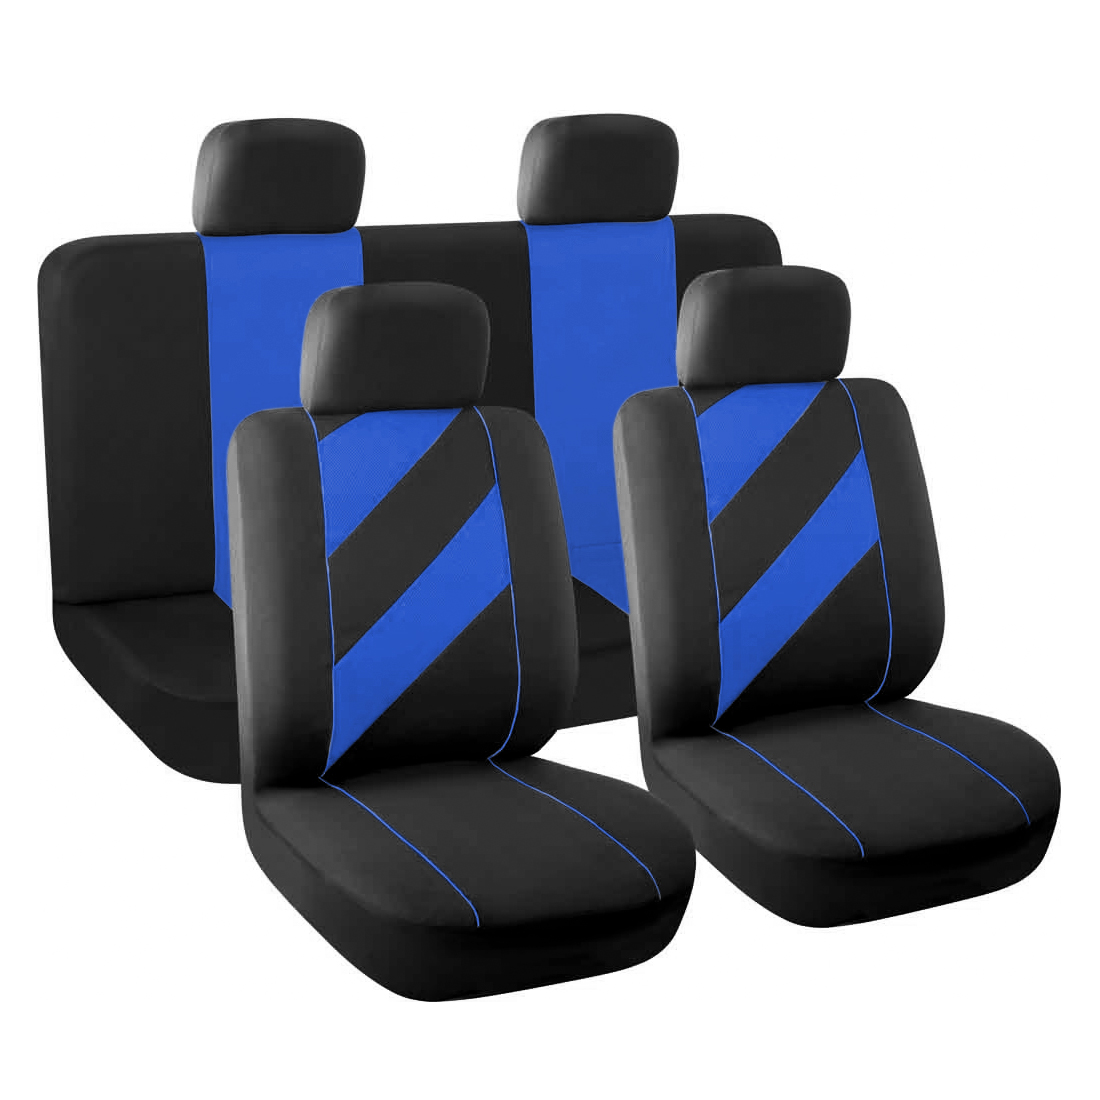 8 Piece Unique Flat Cloth Auto Car Seat Cover Headrests Full set Blue Black